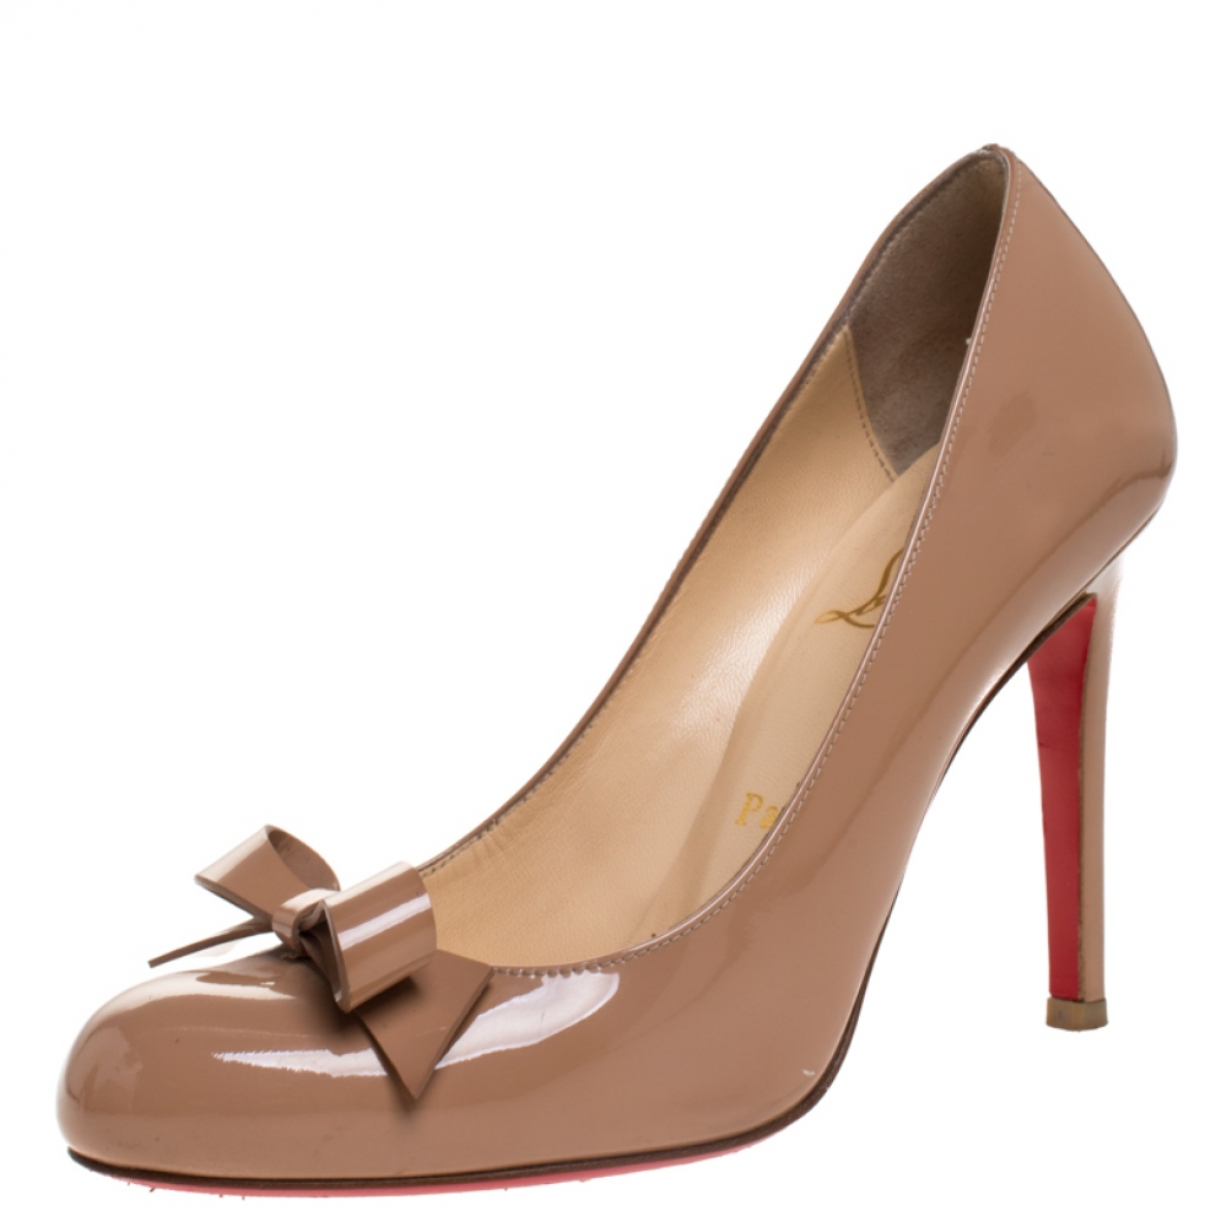 Christian Louboutin N Beige Patent leather Heels for Women 5 US